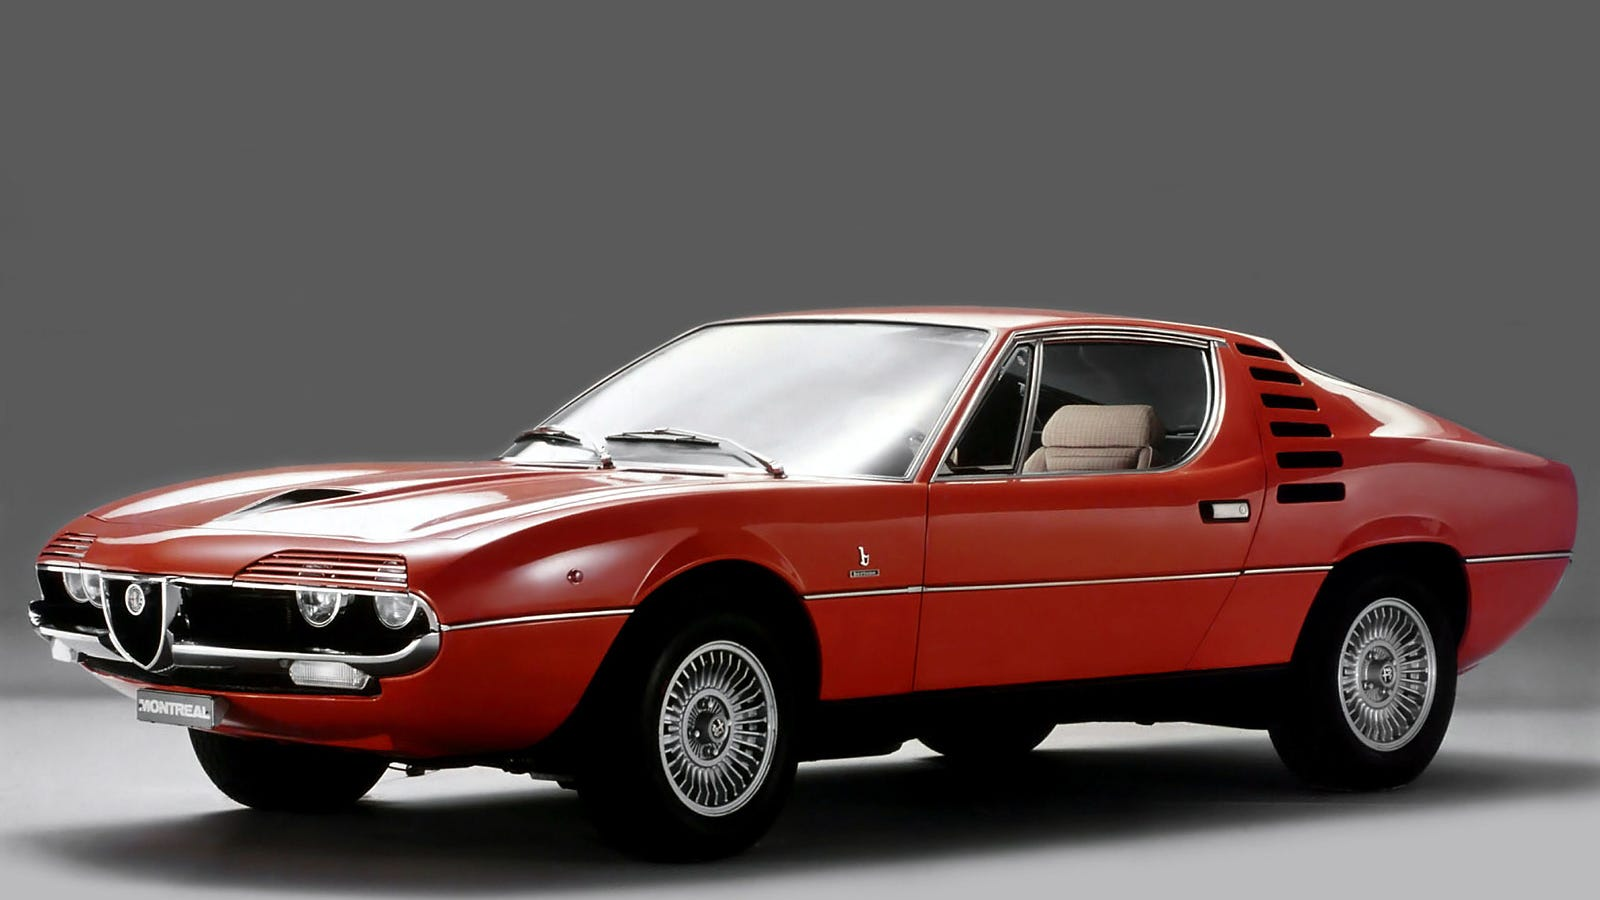 v8 m t underdogs the alfa romeo montreal. Black Bedroom Furniture Sets. Home Design Ideas